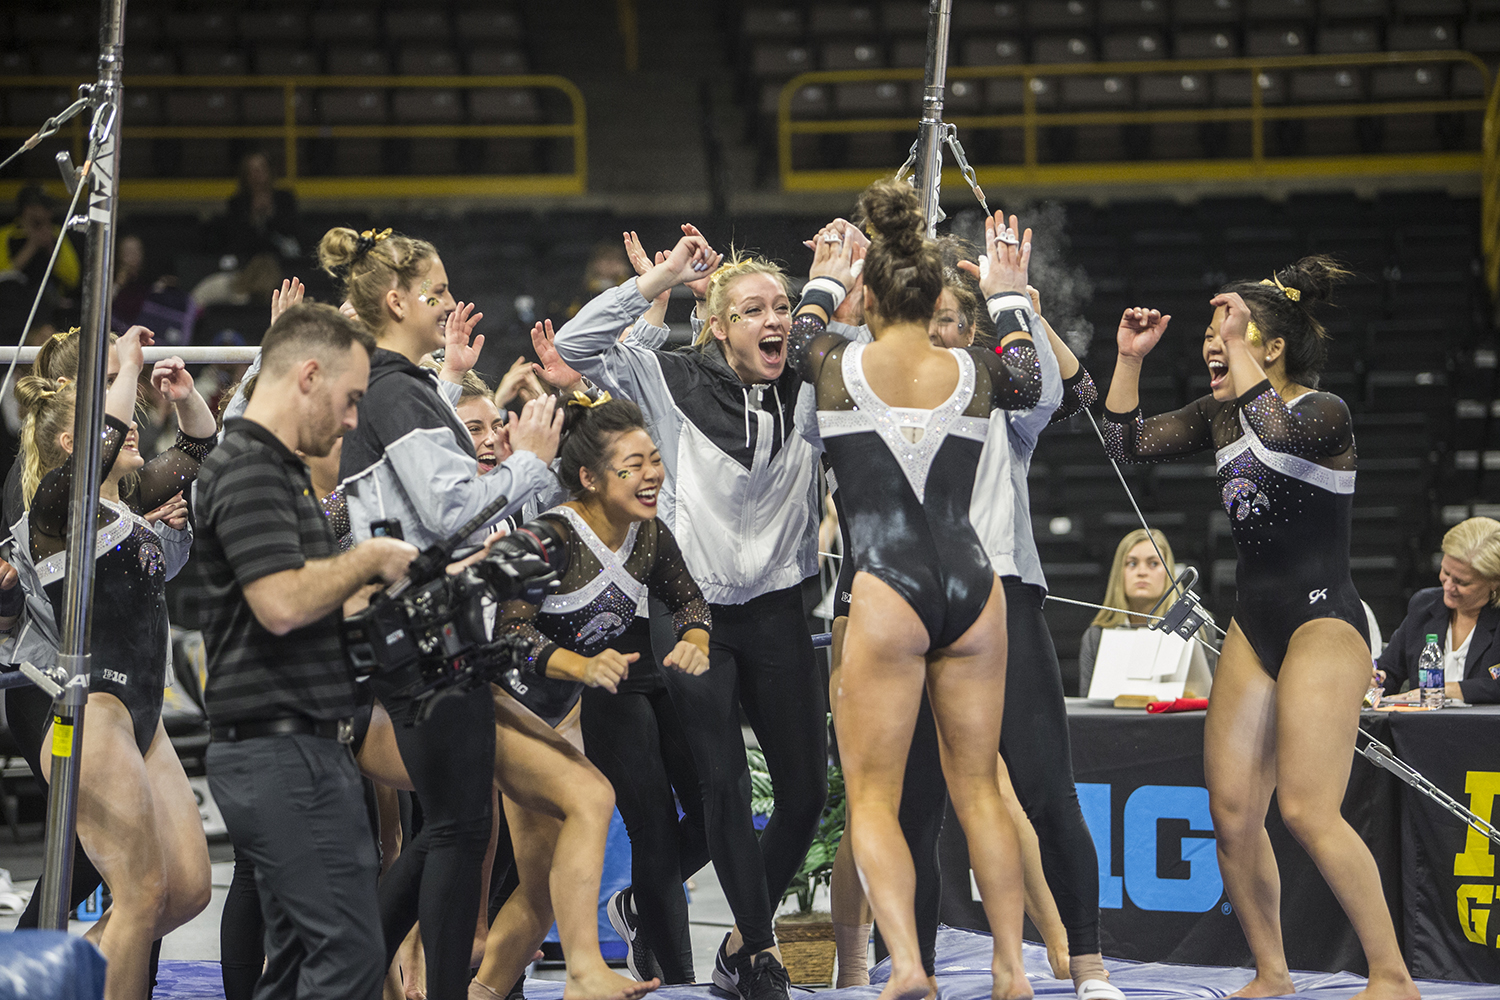 The+Iowa+women%27s+gymnastics+team+celebrates+together+during+a+meet+against+Rutgers+on+Saturday%2C+January+26%2C+2019.+The+Hawkeyes+defeated+the+Scarlet+Knights+194.575+to+191.675.+